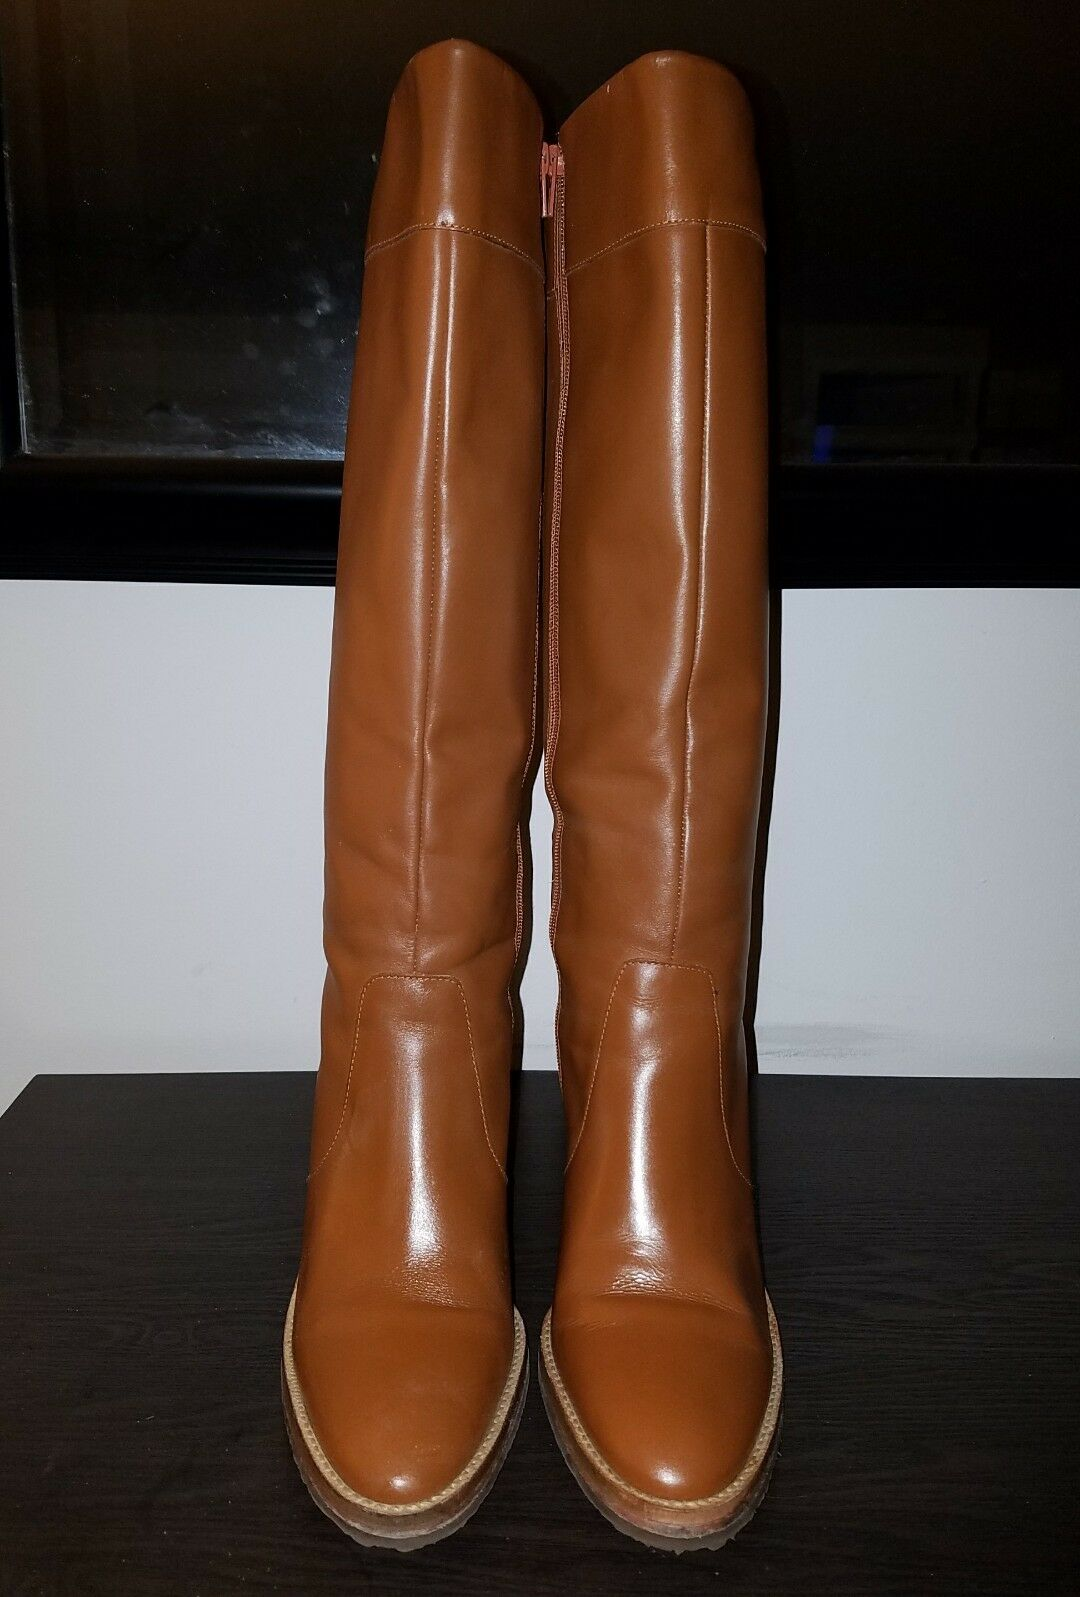 COLIN STUART Brazil 156481 Victorias Secret Leather Knee High Boots 6 M cognac